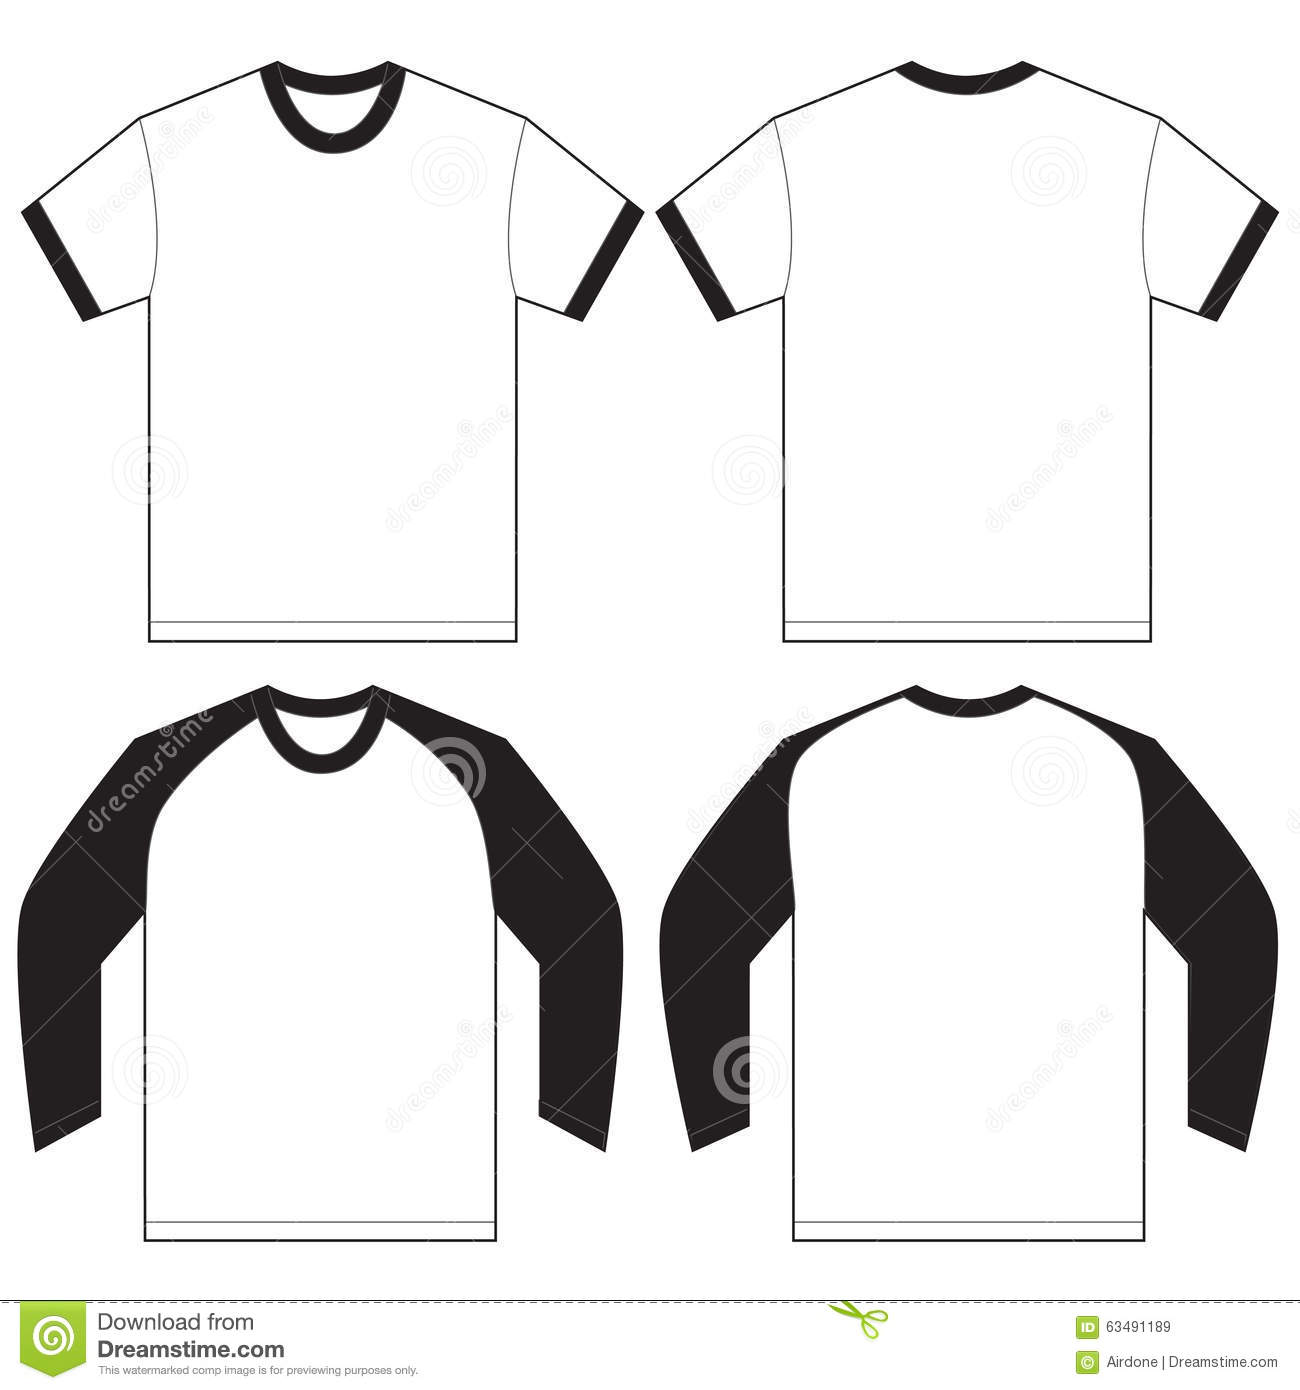 Design t shirt transfer template -  T Shirt Design Template Download